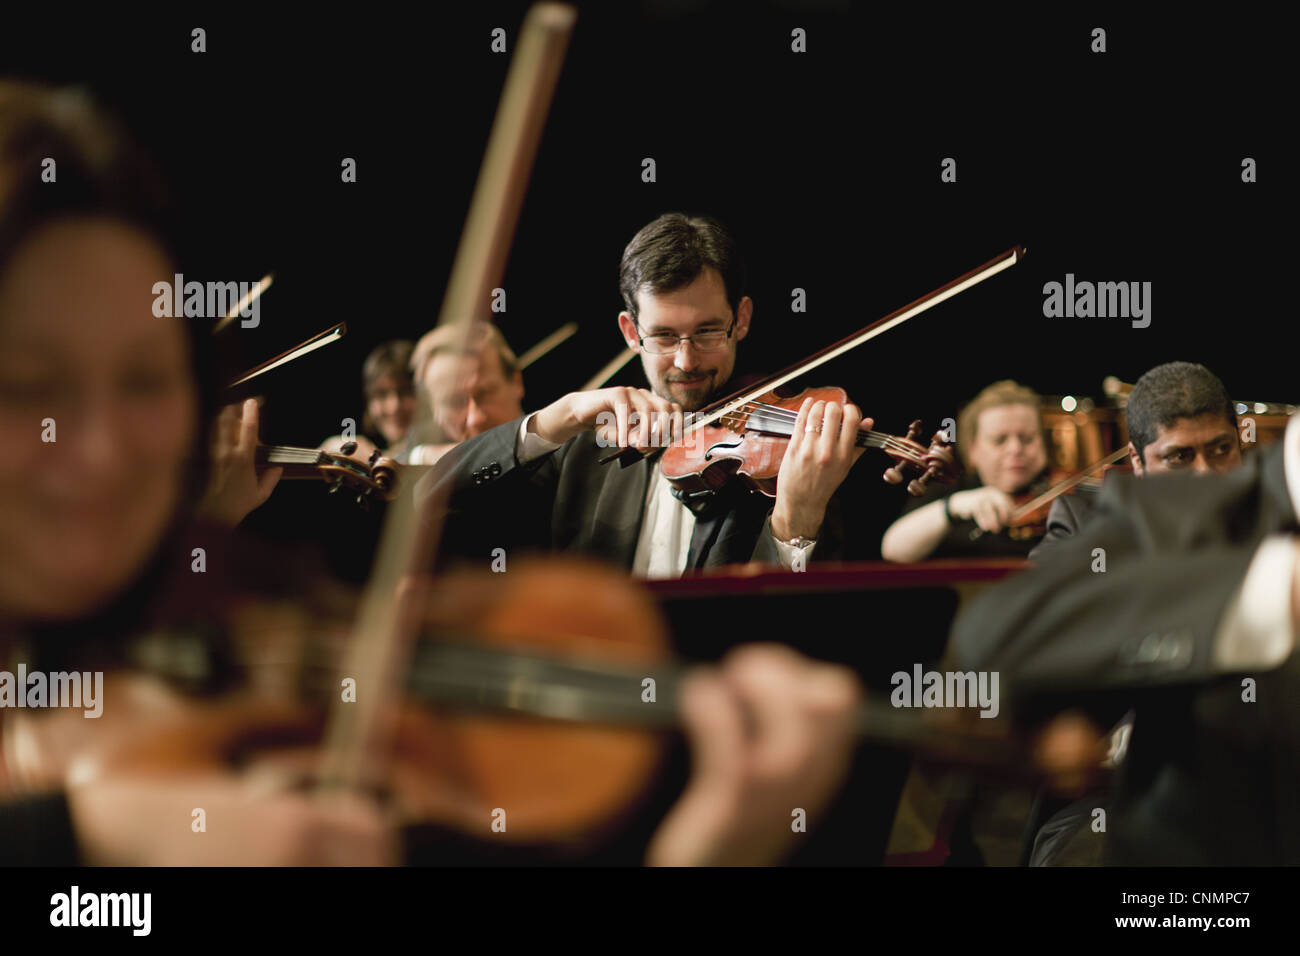 Violin players in orchestra - Stock Image